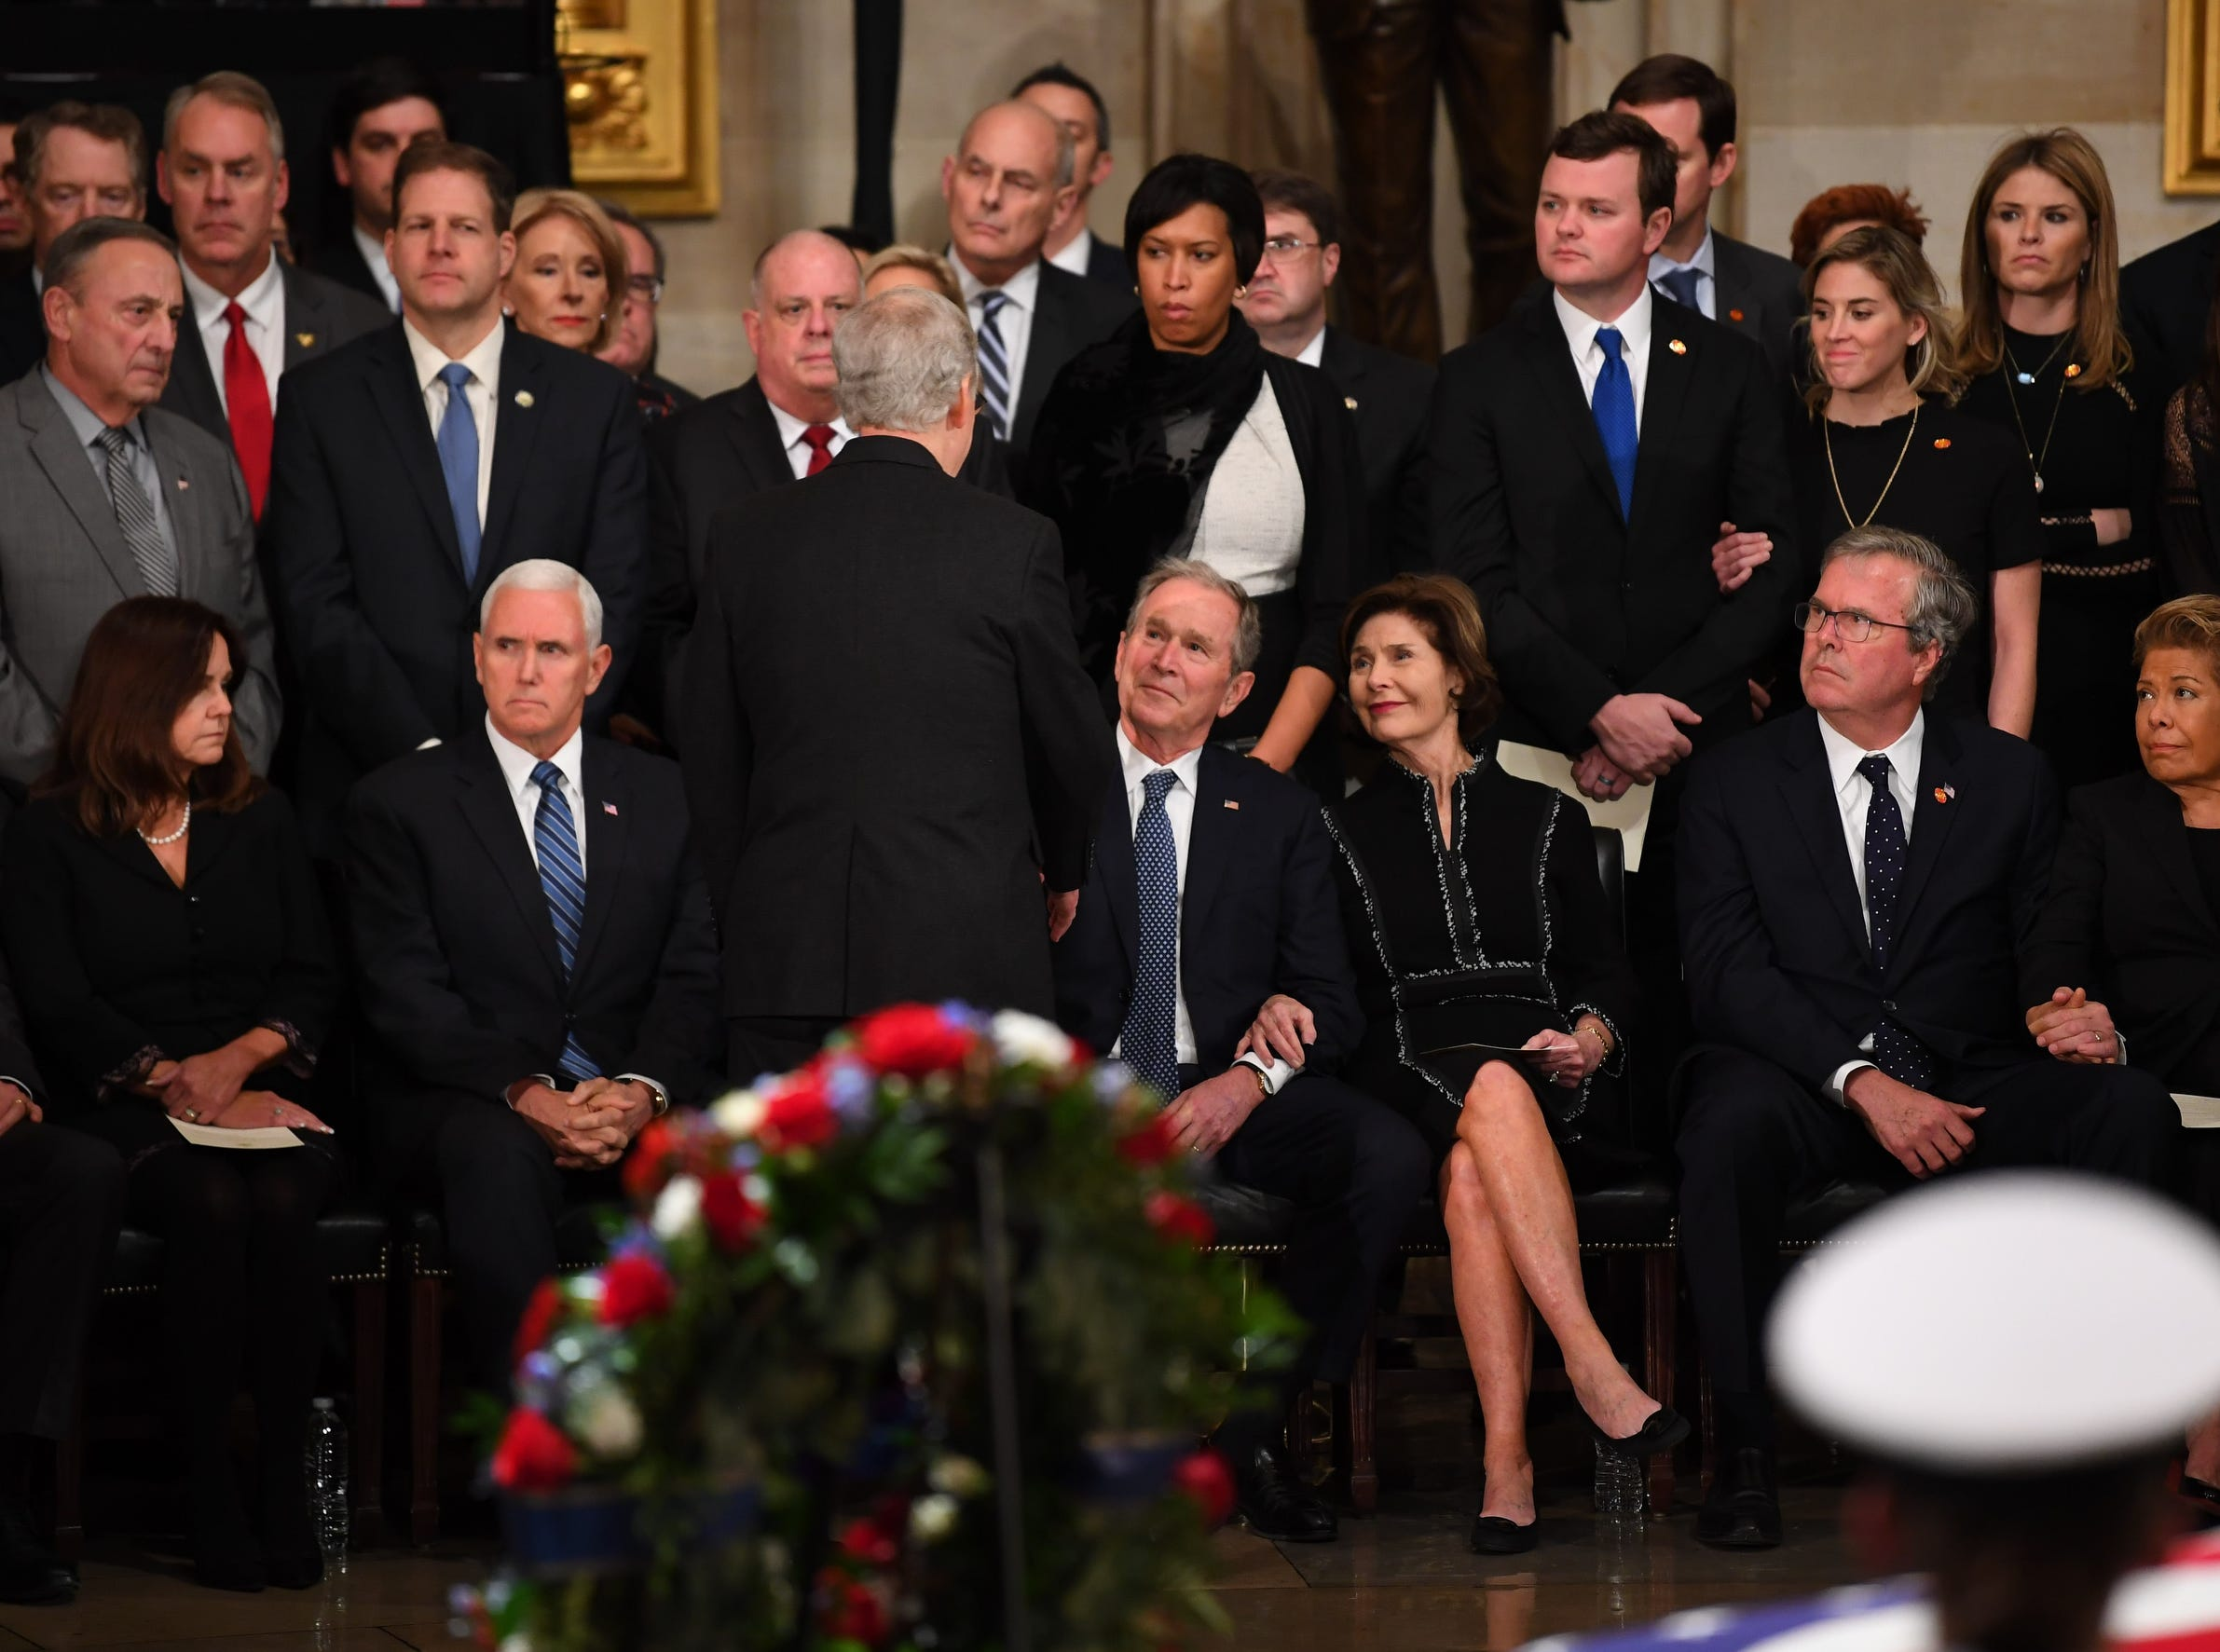 Speaker McConnell greets President George W. Bush as family members and others look on. at the Capitol Rotunda.